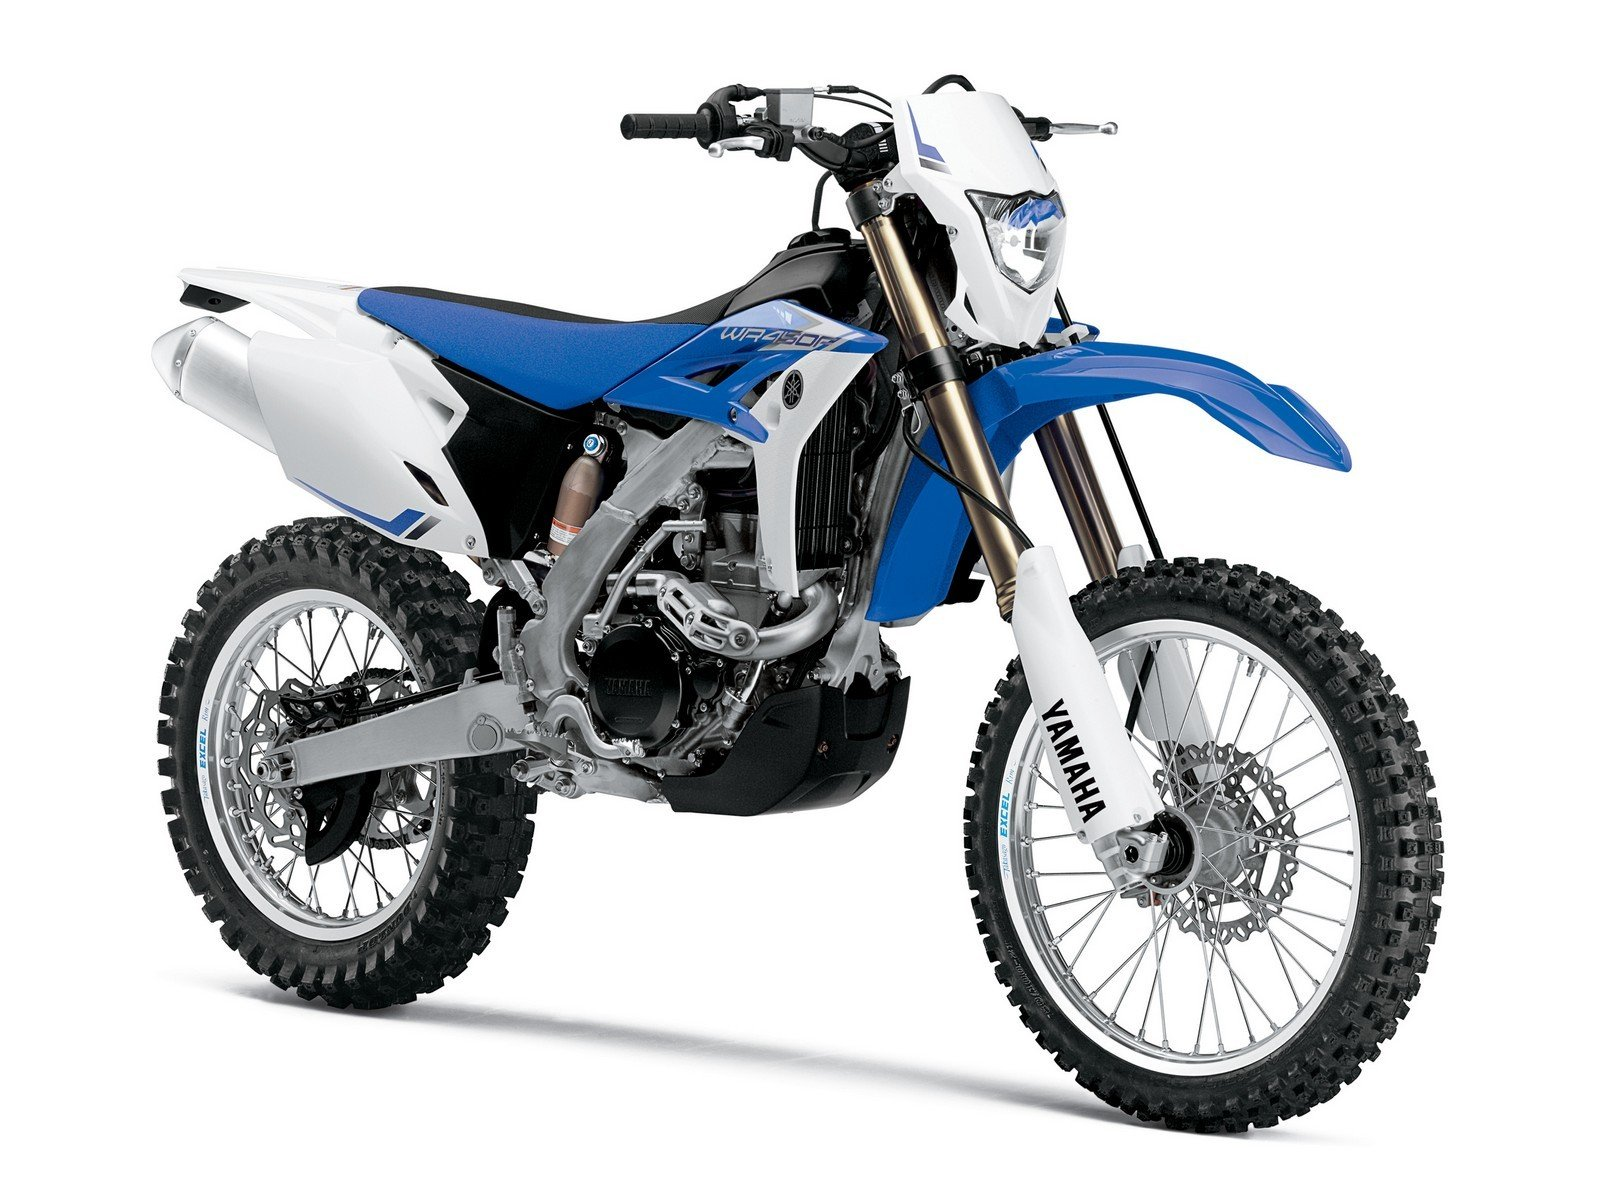 2013 yamaha wr450f picture 480973 motorcycle review top speed. Black Bedroom Furniture Sets. Home Design Ideas